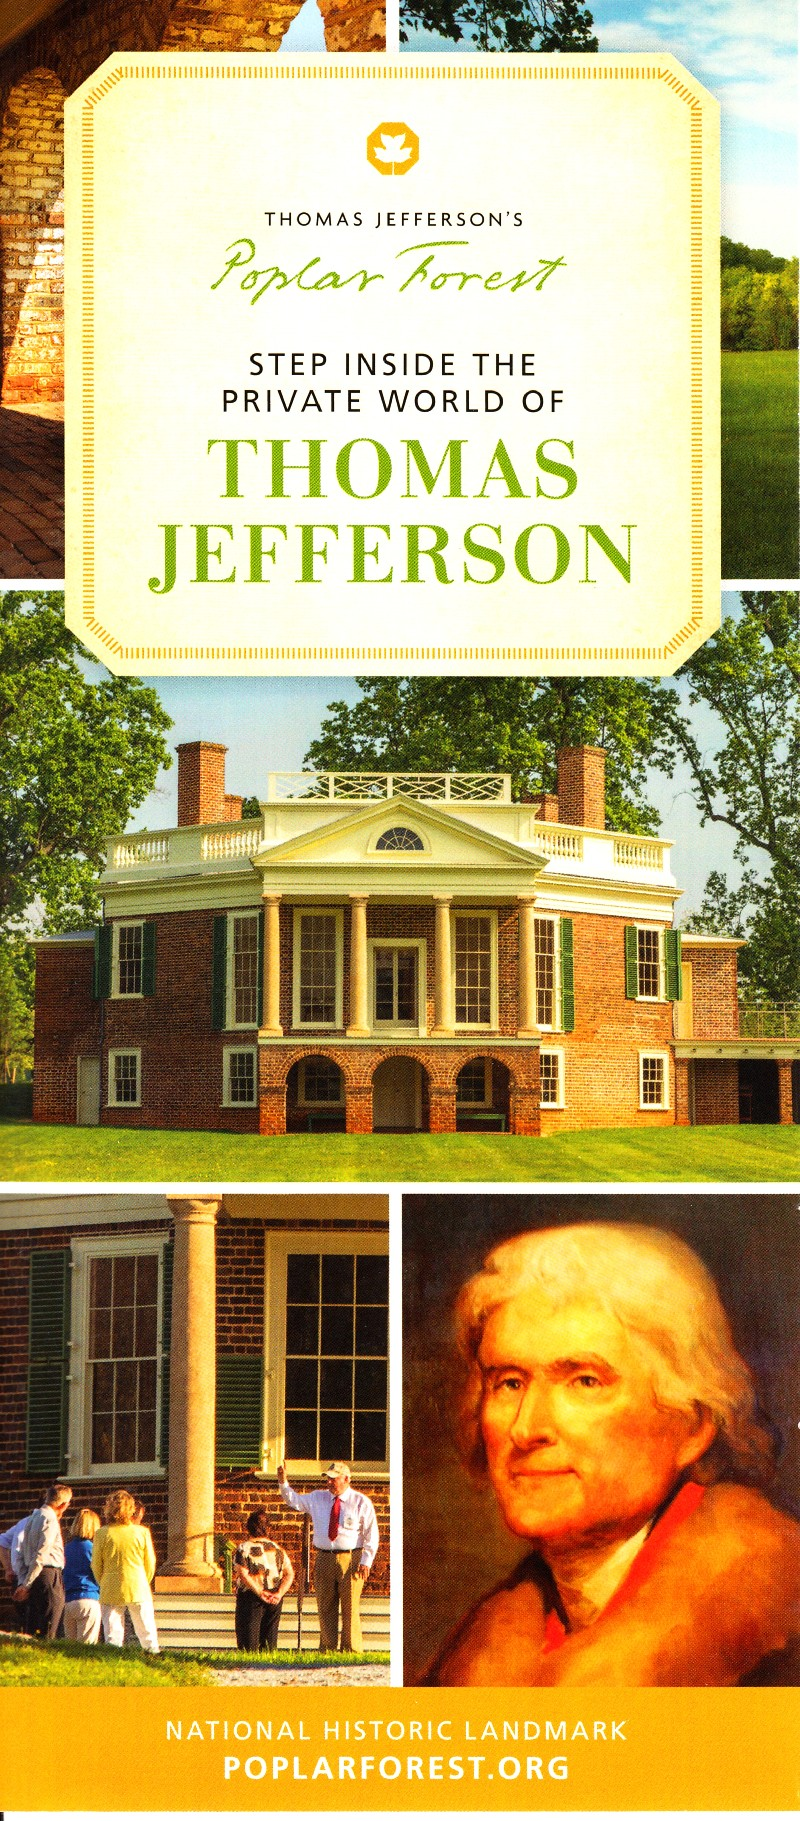 Thomas Jefferson's Poplar Forest Front Brochure Cover